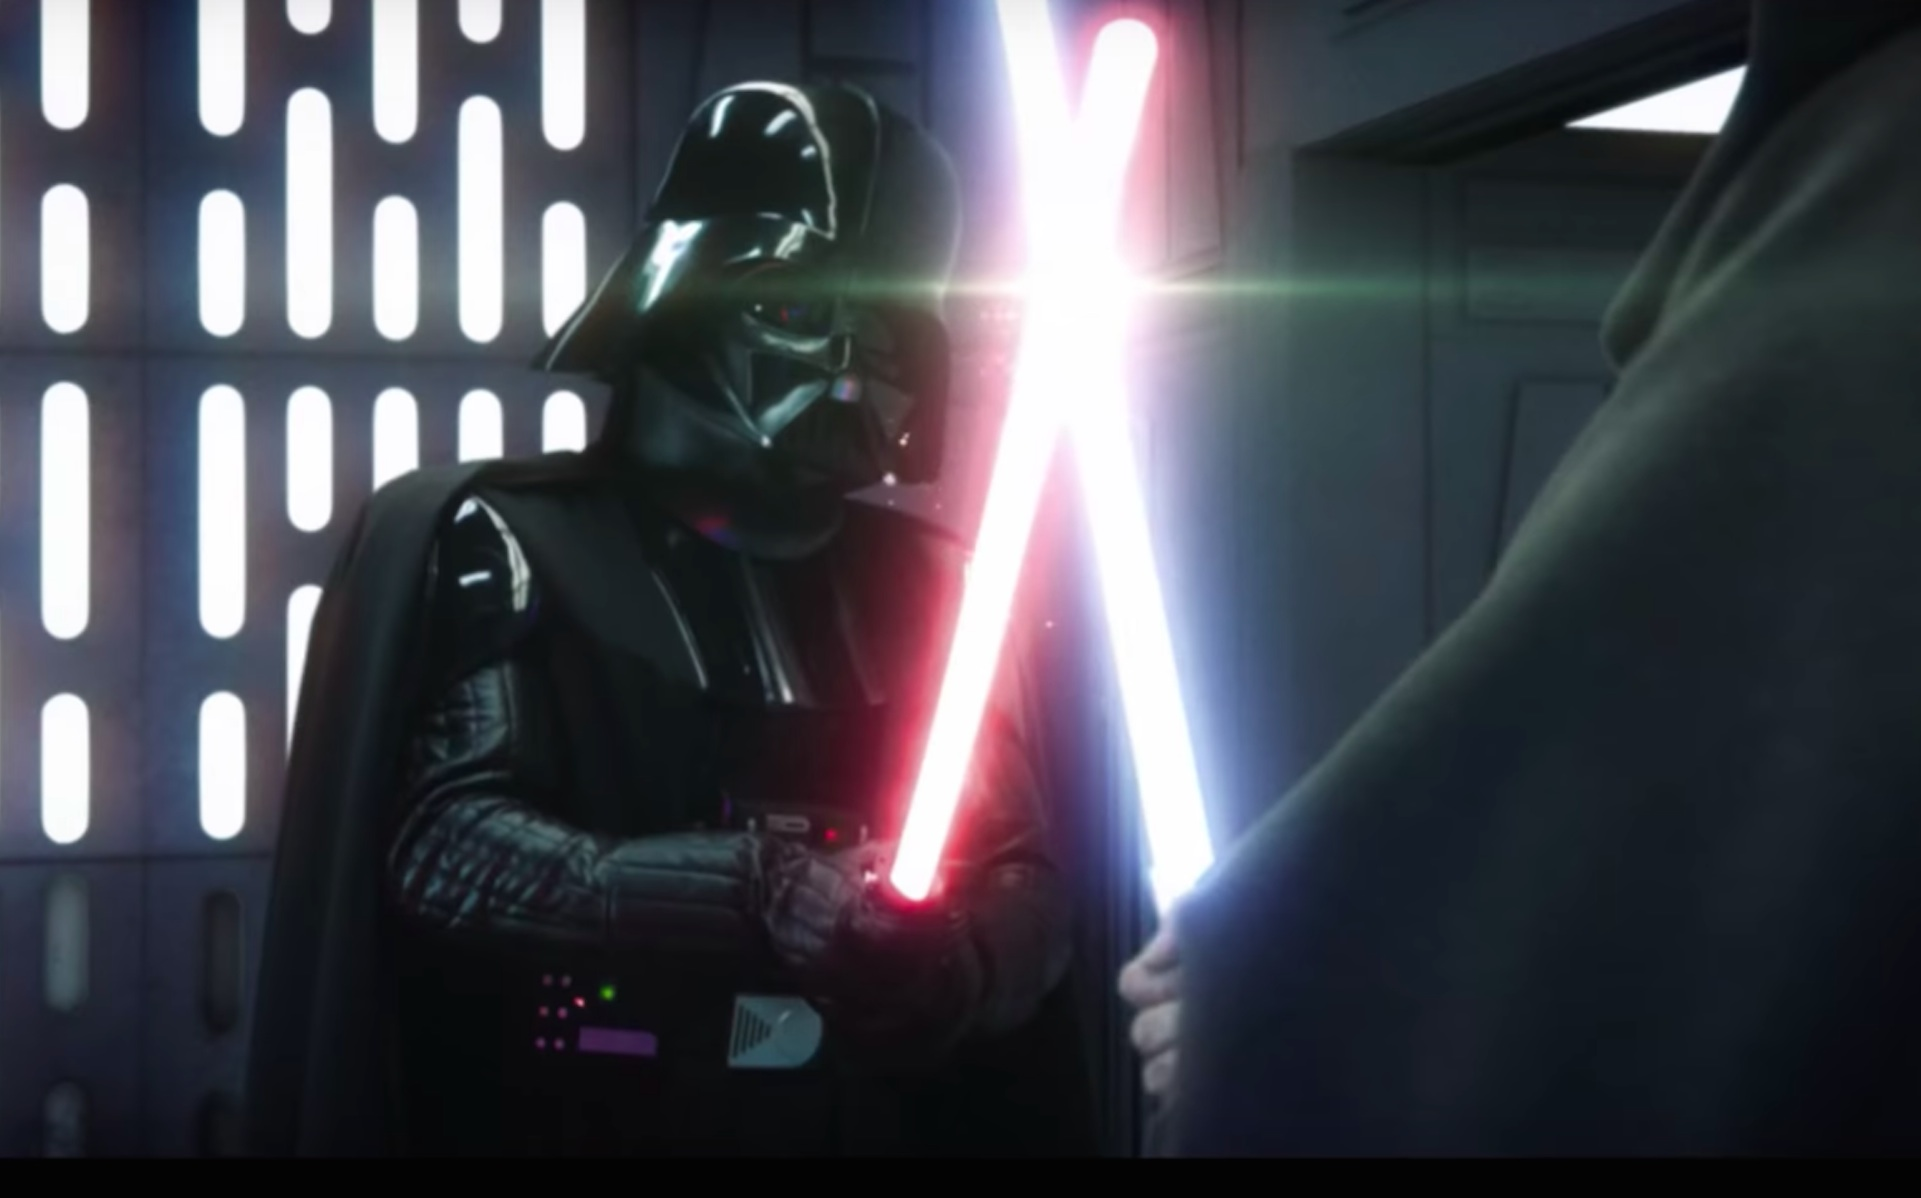 Holy Sith This Updated Obi Wan Vs Darth Vader Lightsaber Duel Is Insane